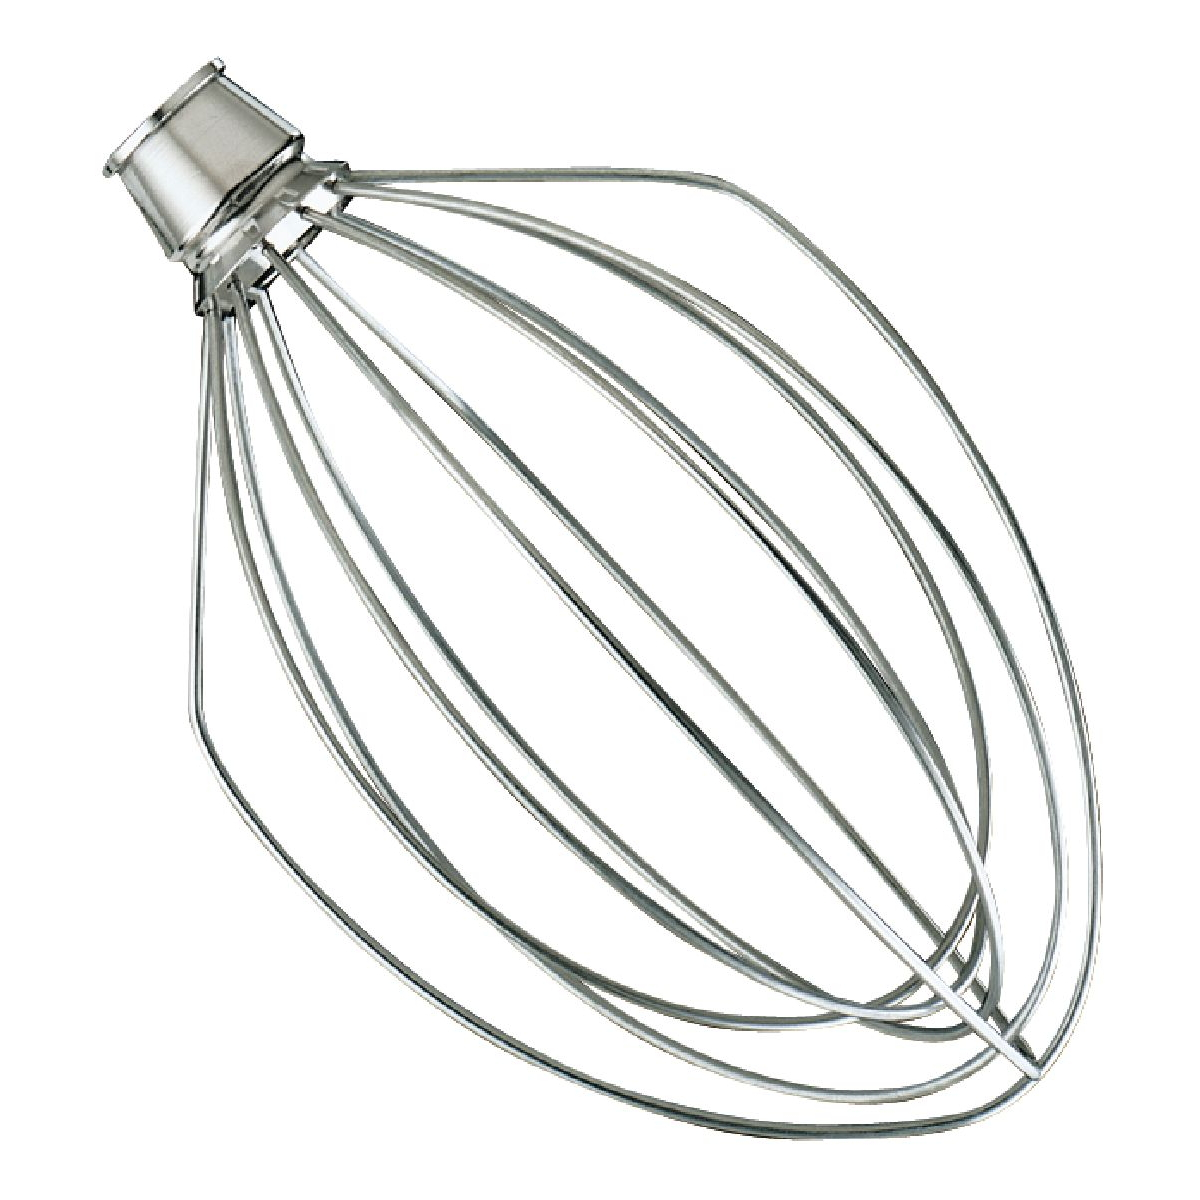 KitchenAid Stainless Steel 6 Wire Whip Stand Mixer Attachment